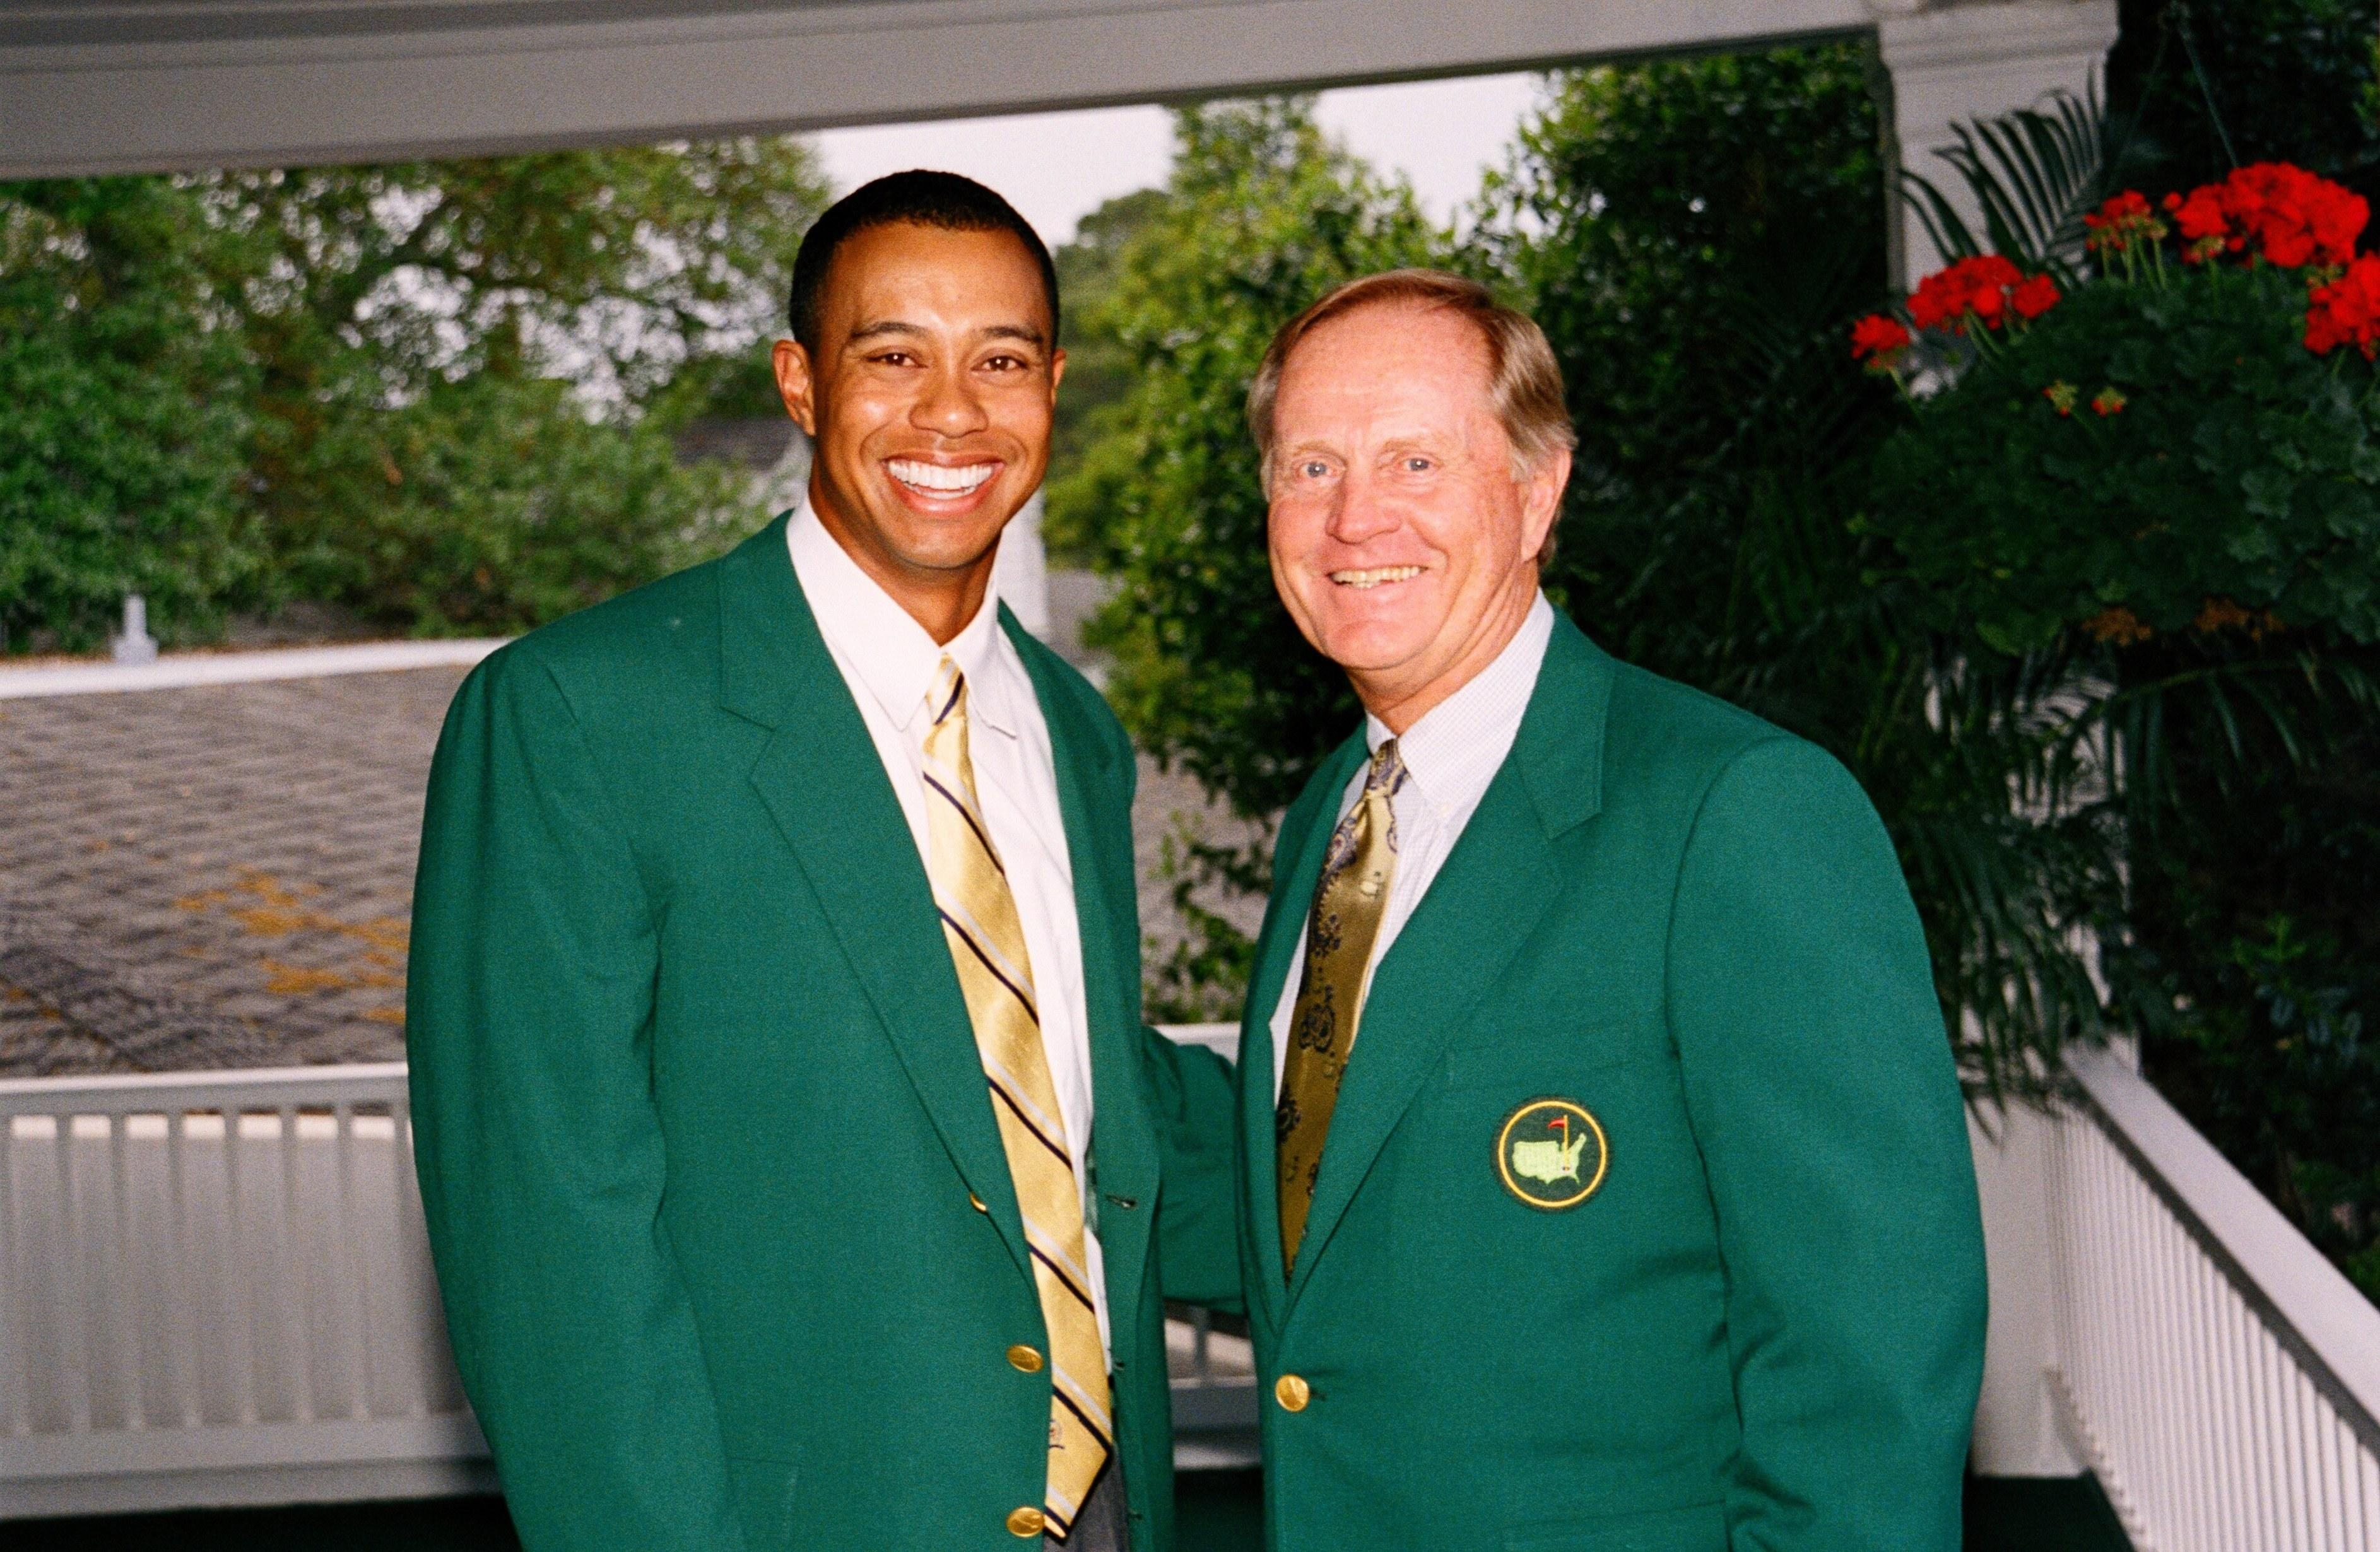 The one major championship stat Tiger Woods has no chance of matching